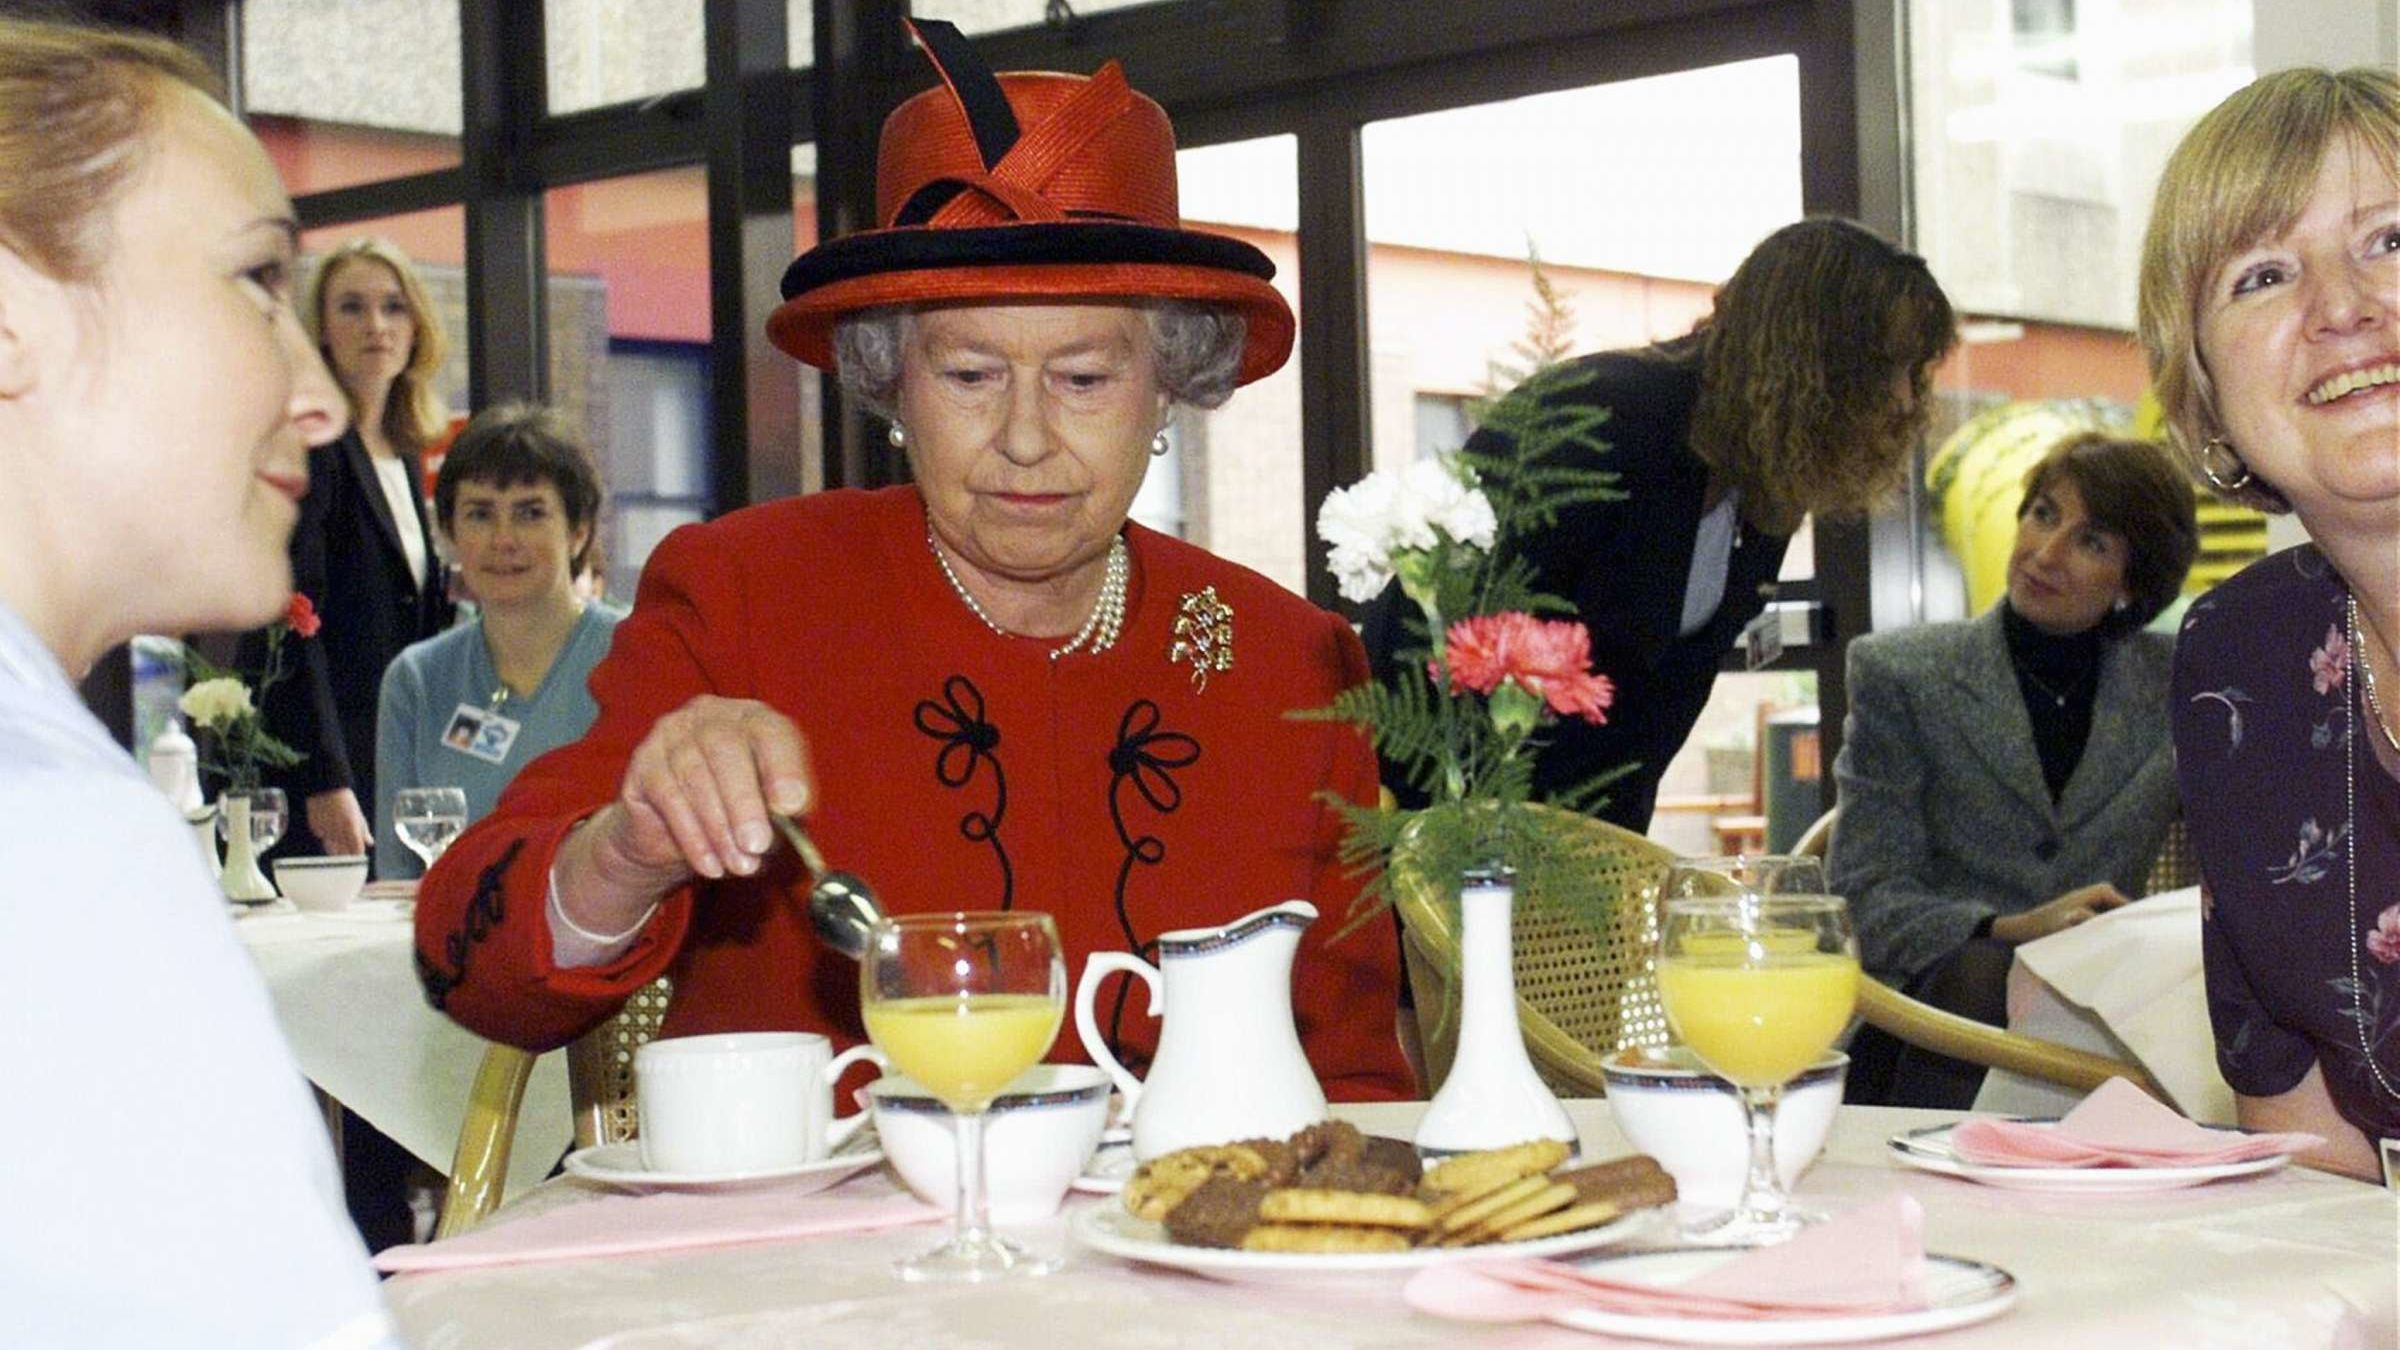 How to Make Queen Elizabeth's Beloved Chocolate Biscuit Cake at Home